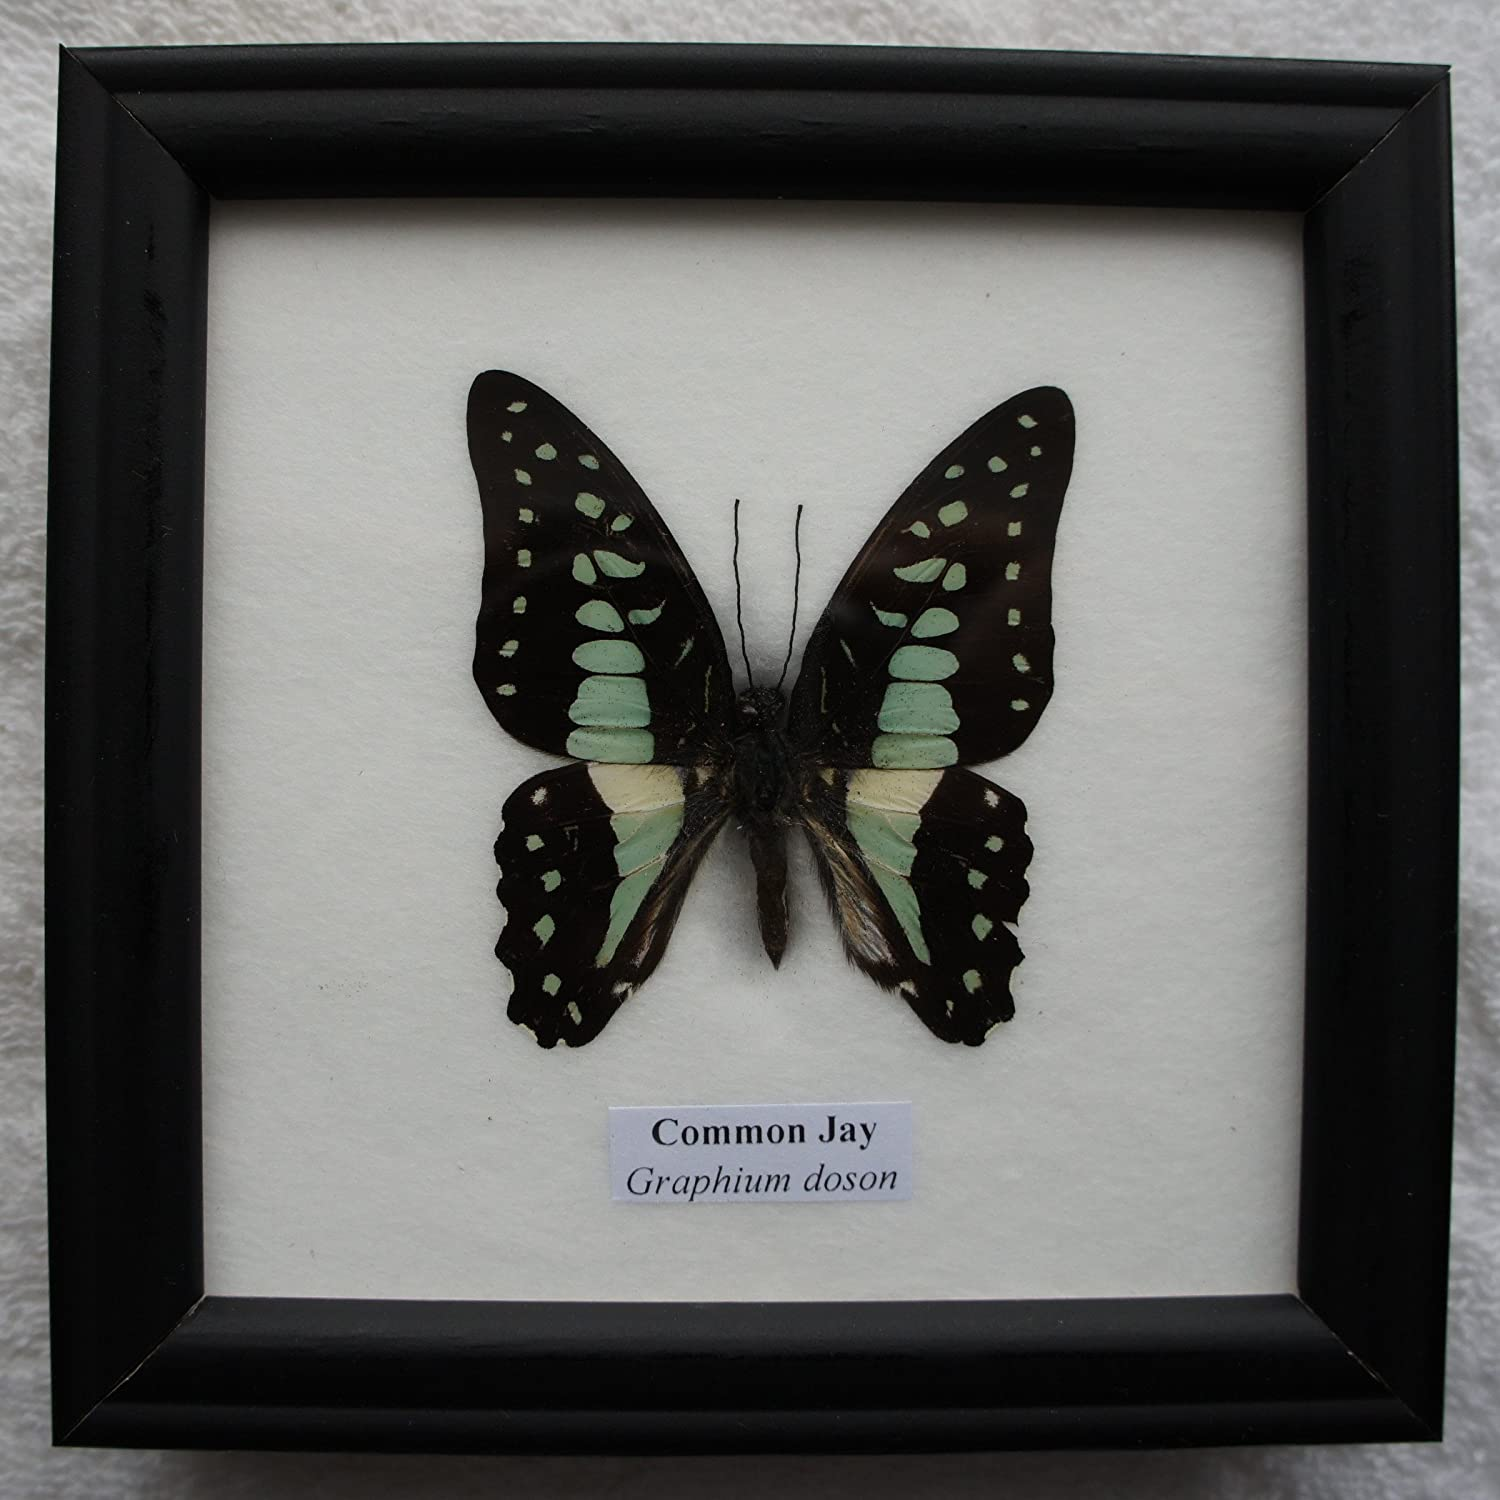 Common Jay (Graphium doson) BUTTERFLY PICTURE FRAME - REAL GENUINE ...